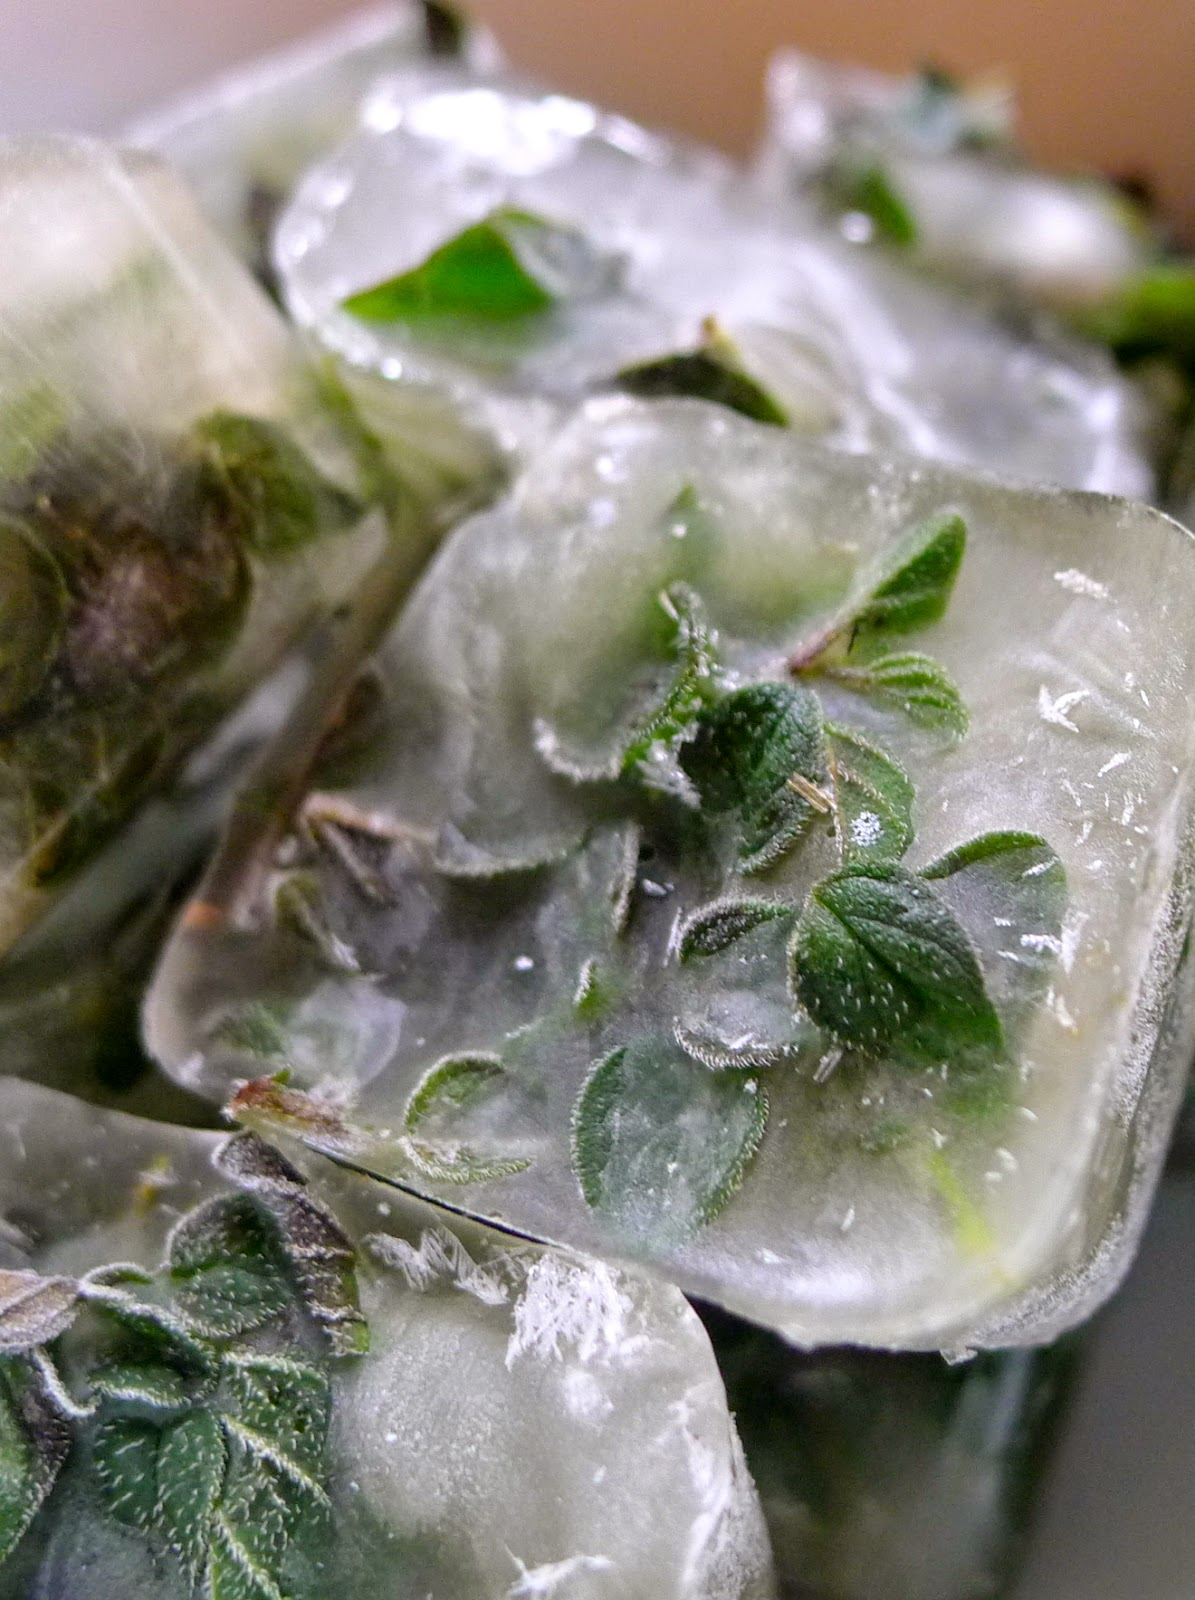 Frozen oregano, preserving herbs.